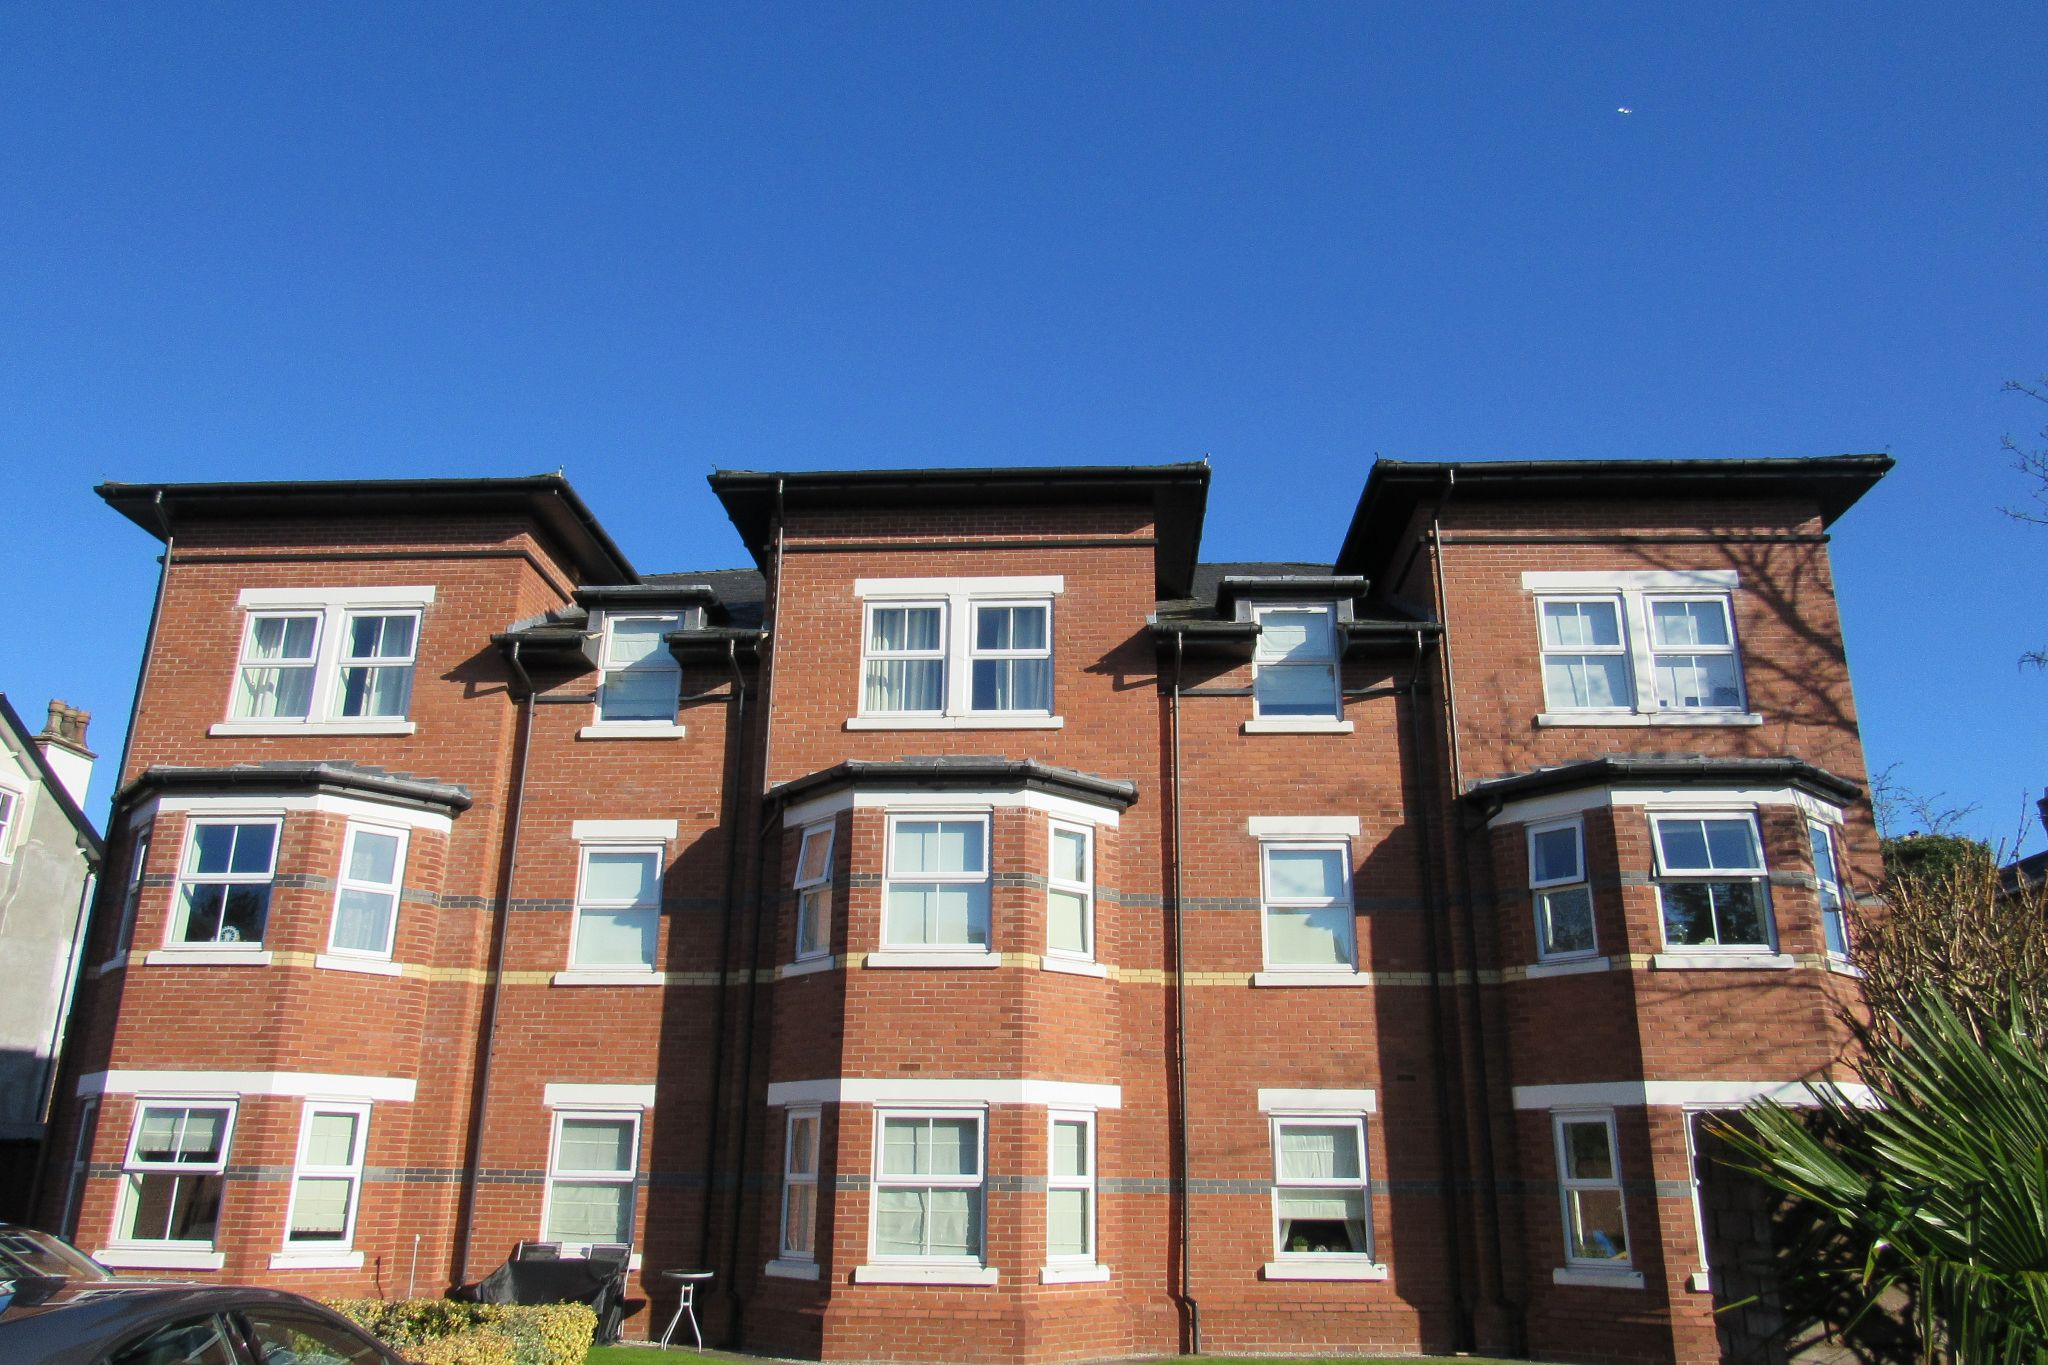 3 bedroom apartment flat/apartment SSTC in Sale - Photograph 4.